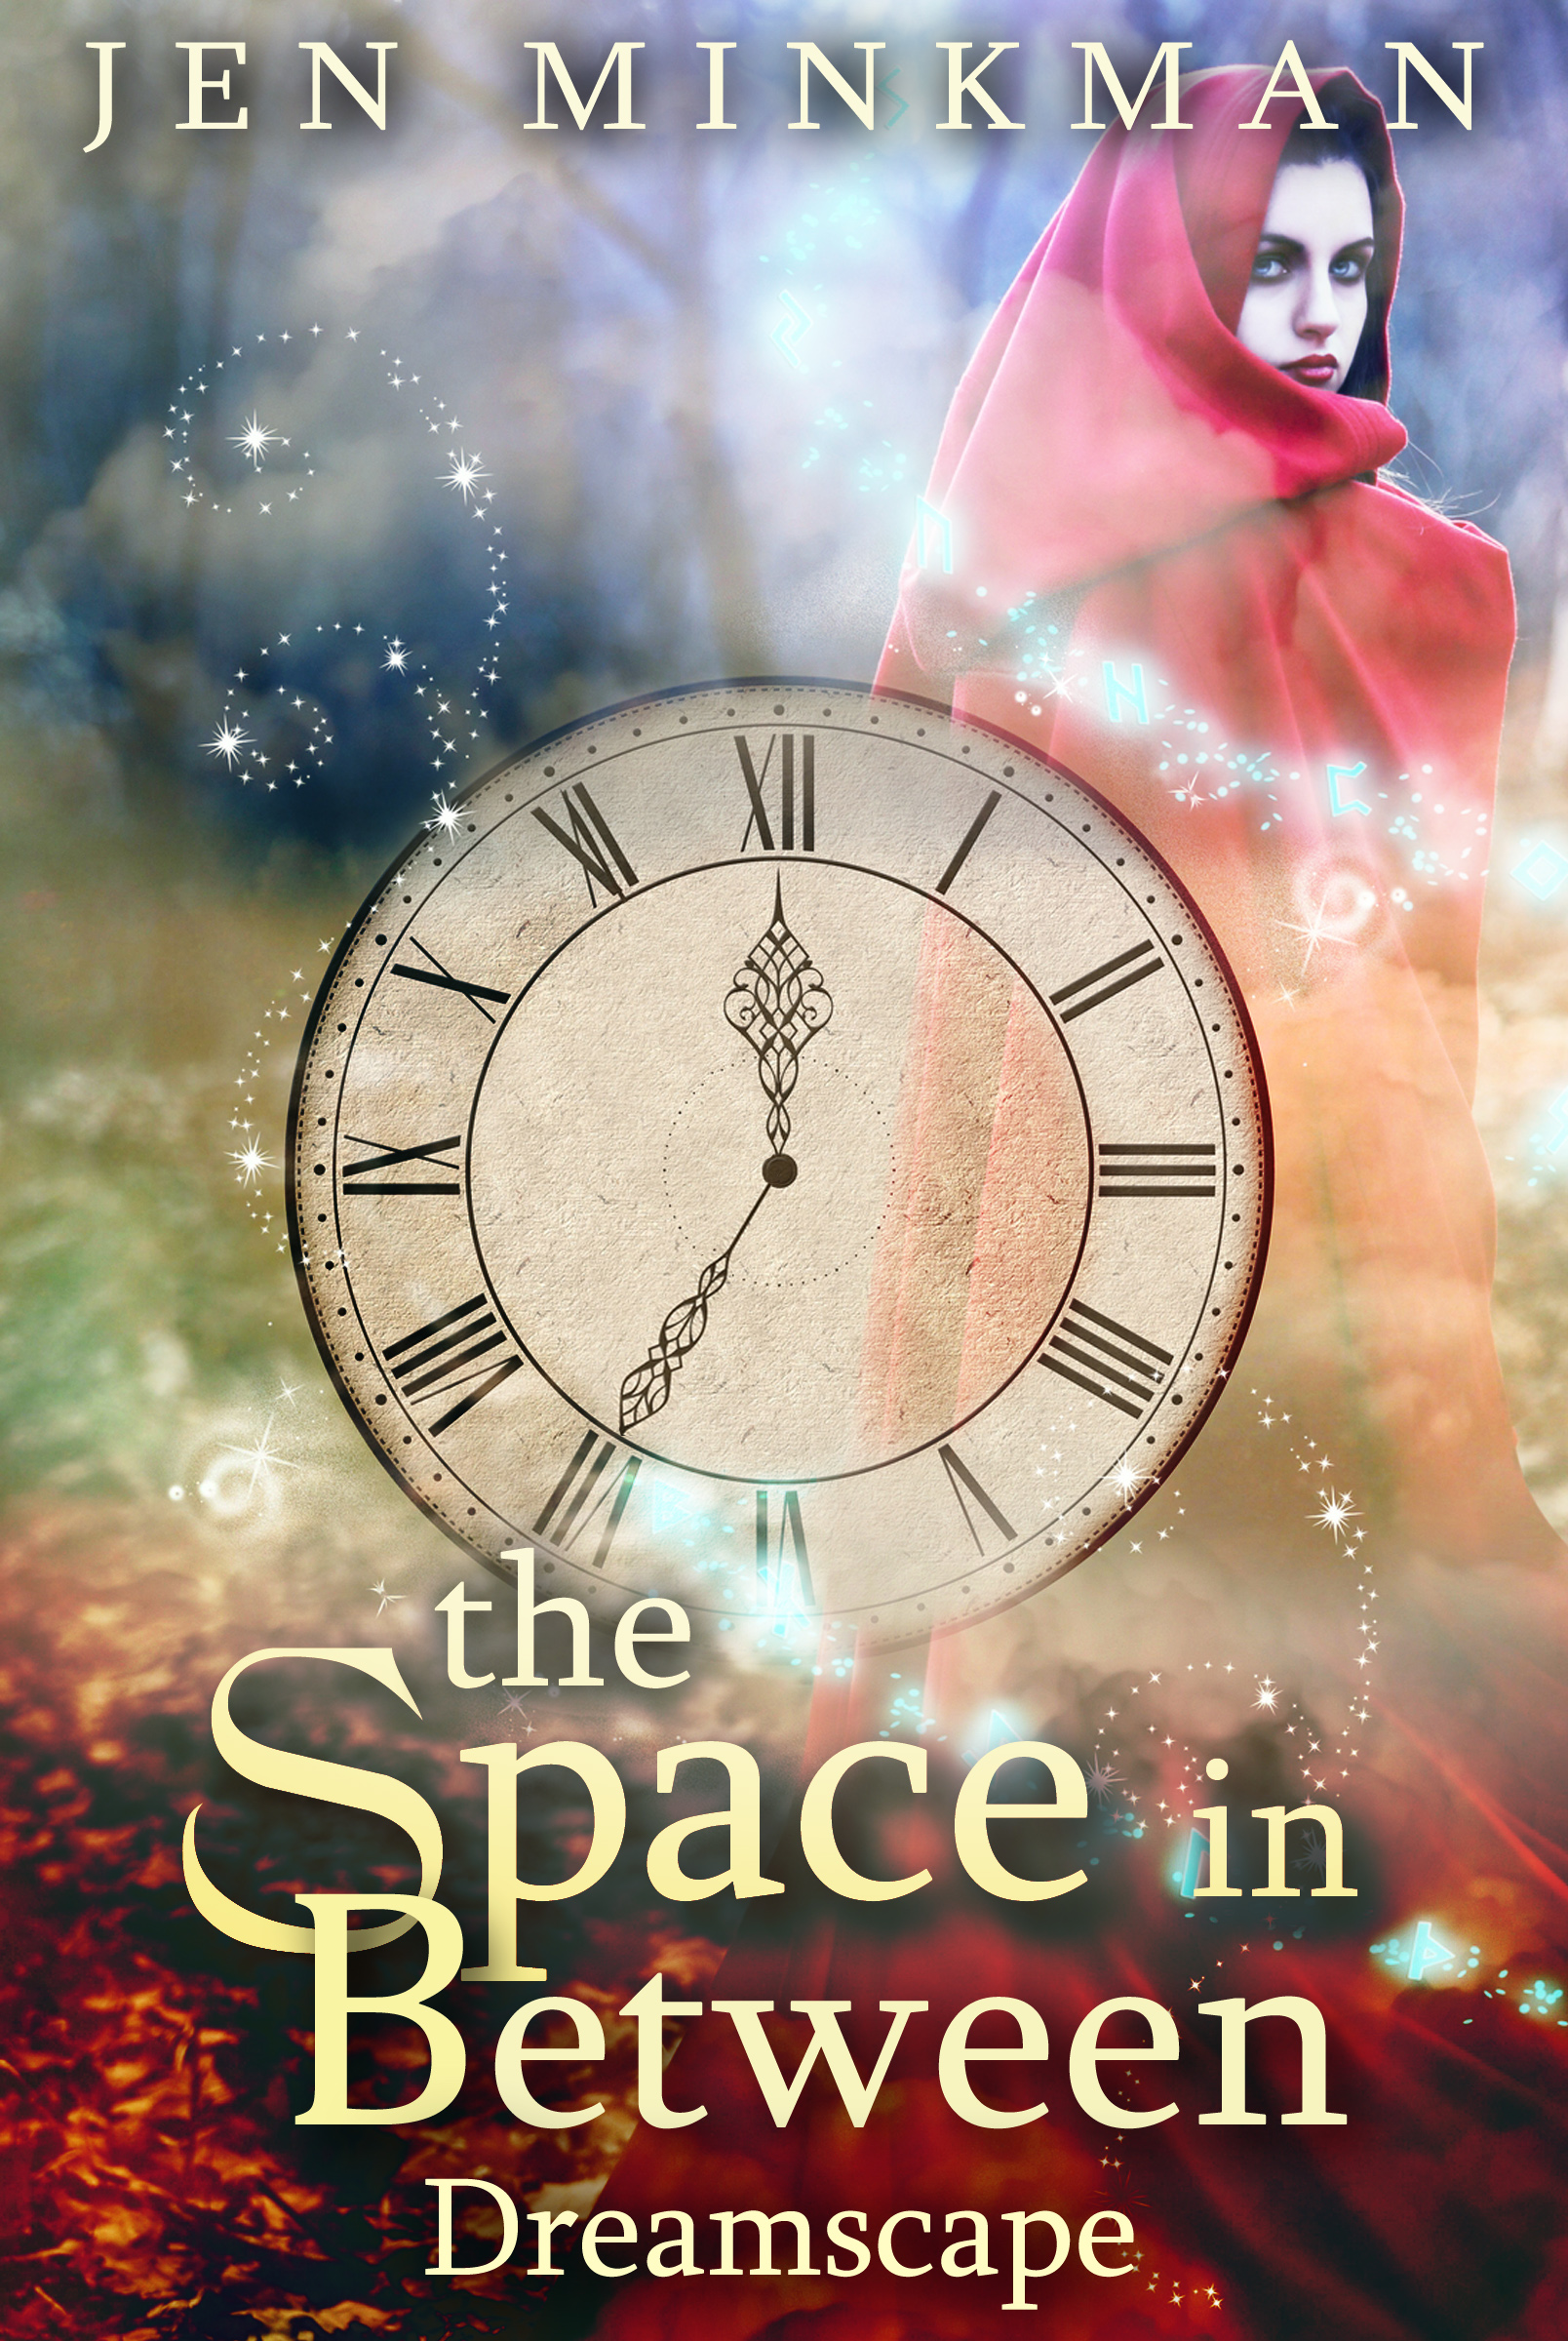 The space in between - book 1